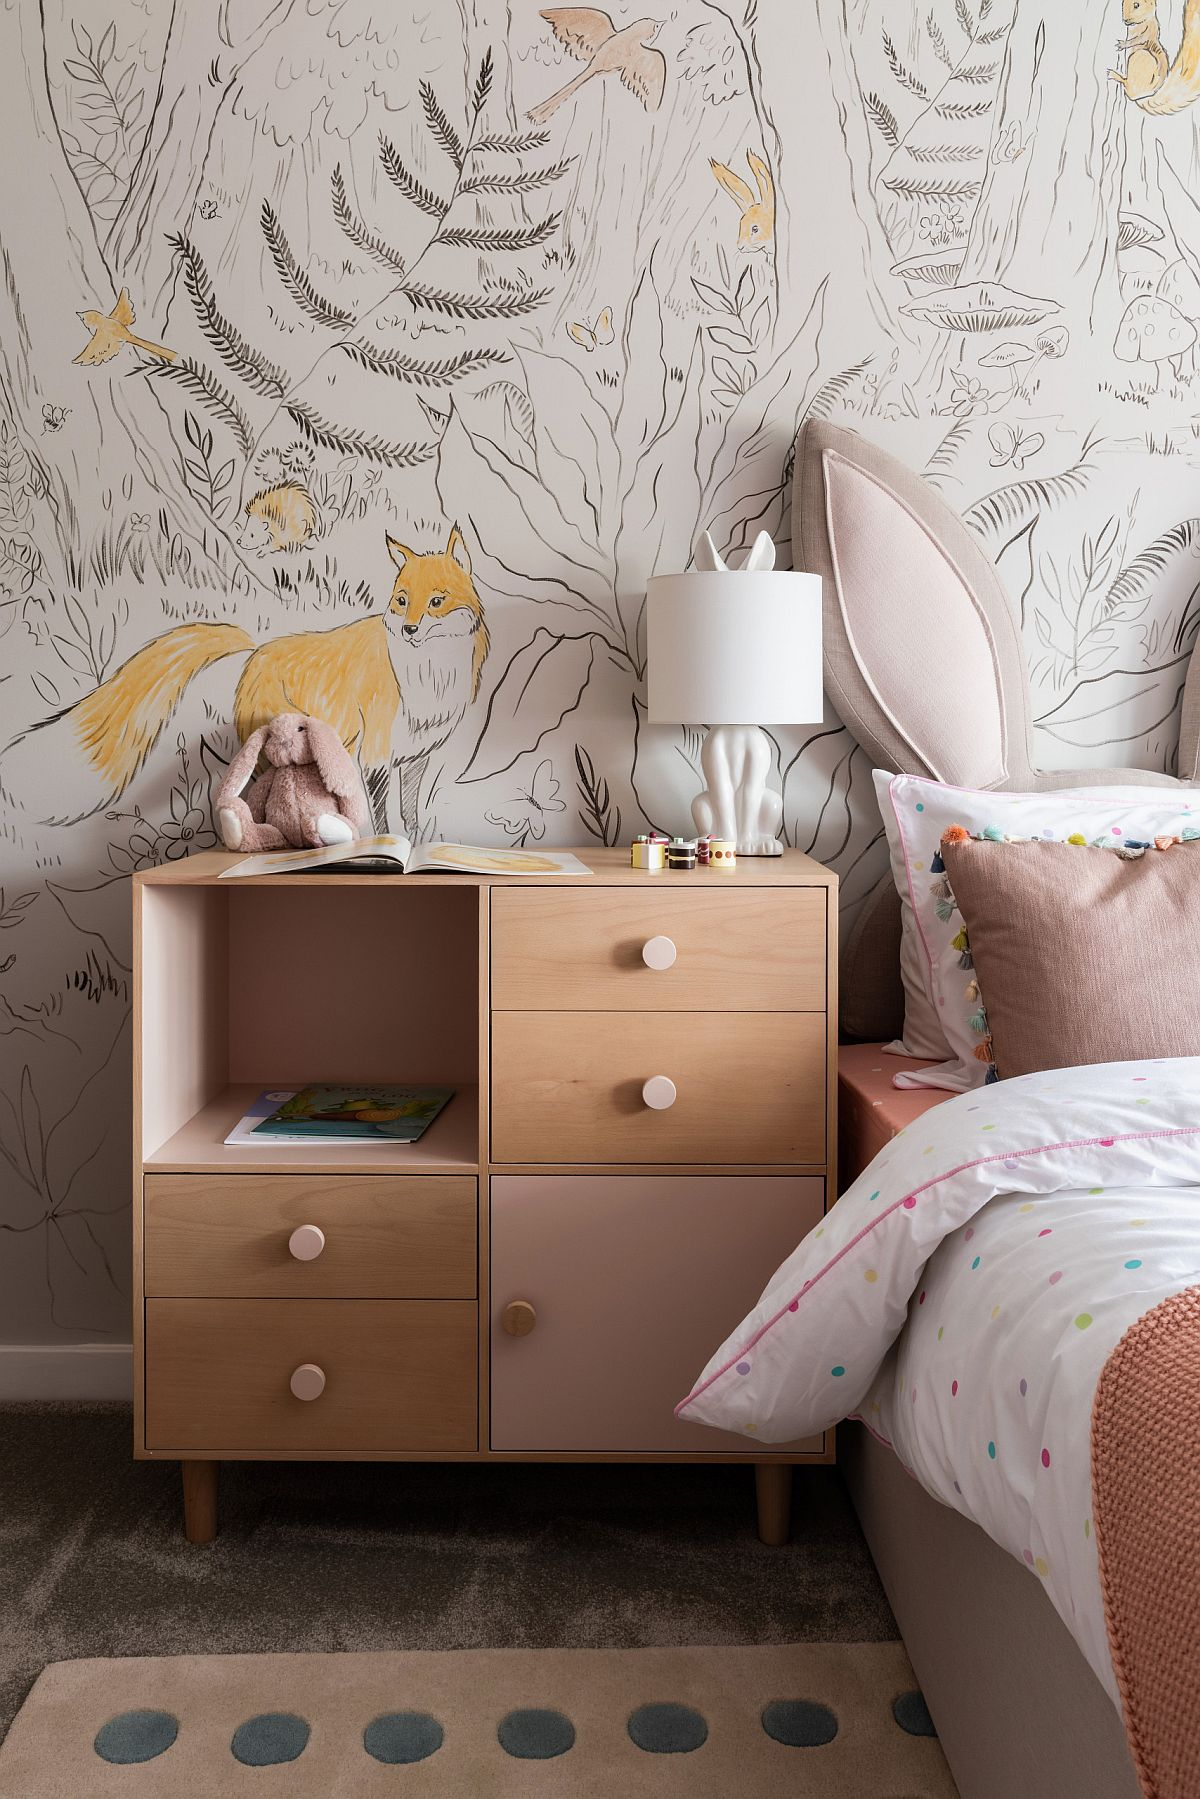 Wallpaper brings the charm of woods into this contemporary girl's bedroom in white and light pink